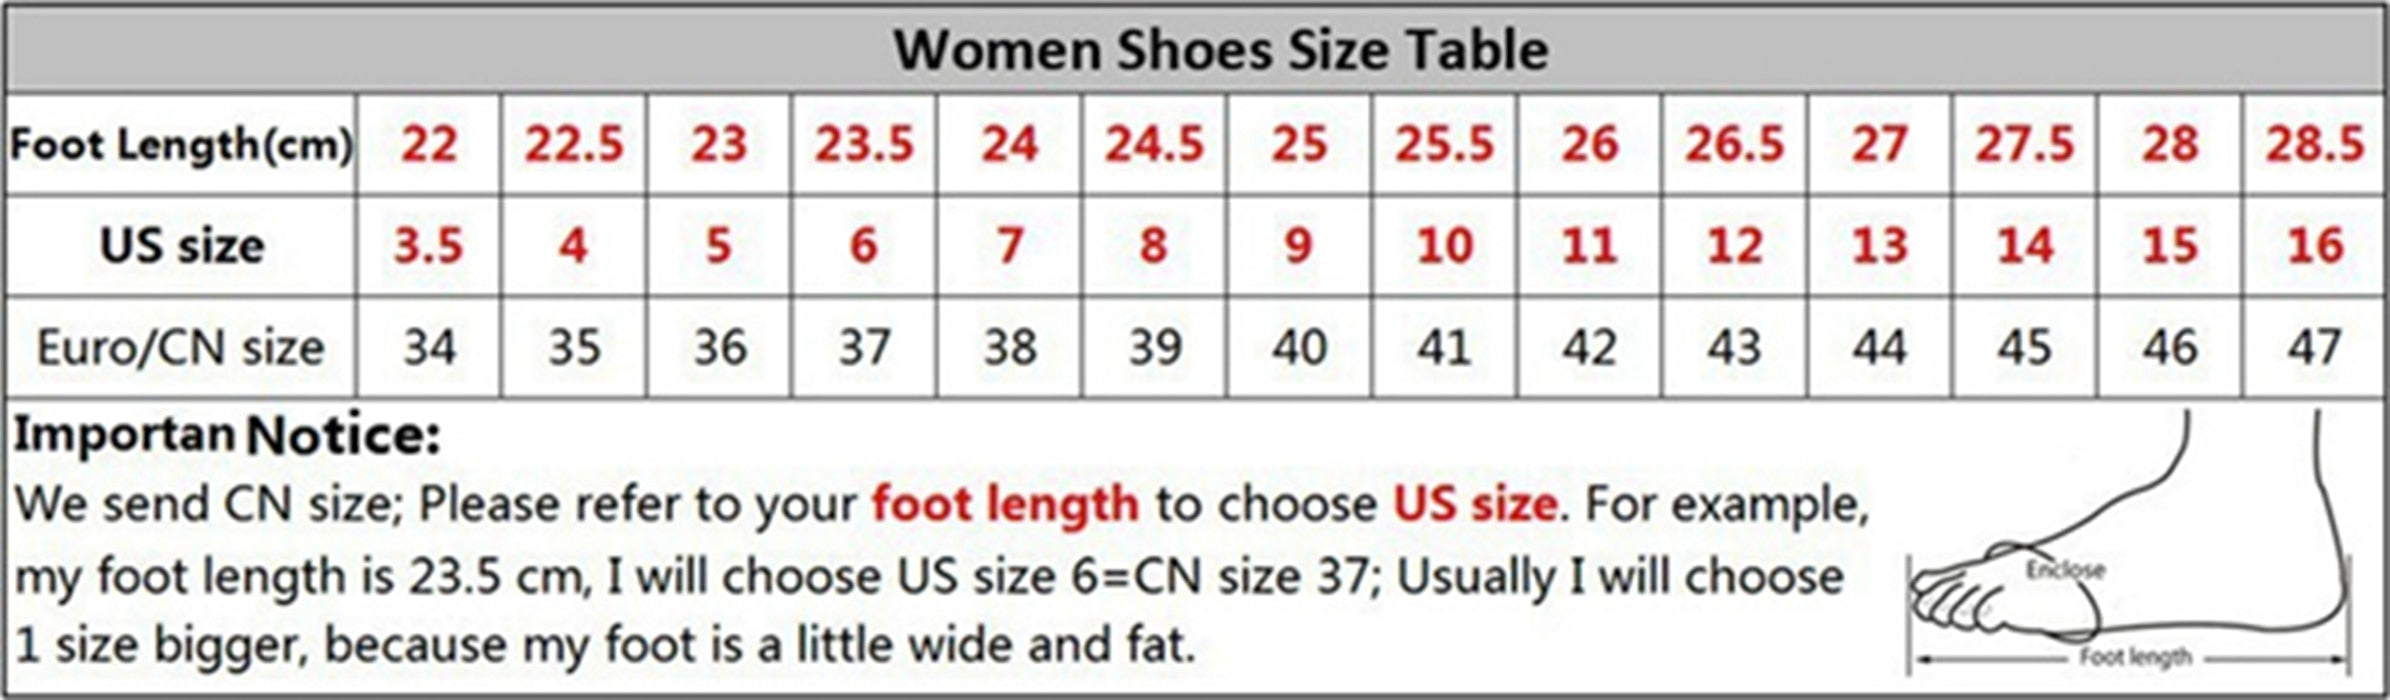 Women's Shoes Top Quality Flats Shoes For Woman Round Toe Slip On Shoes Genuine Leather Loafers Shallow Soft Shoes - LiveTrendsX